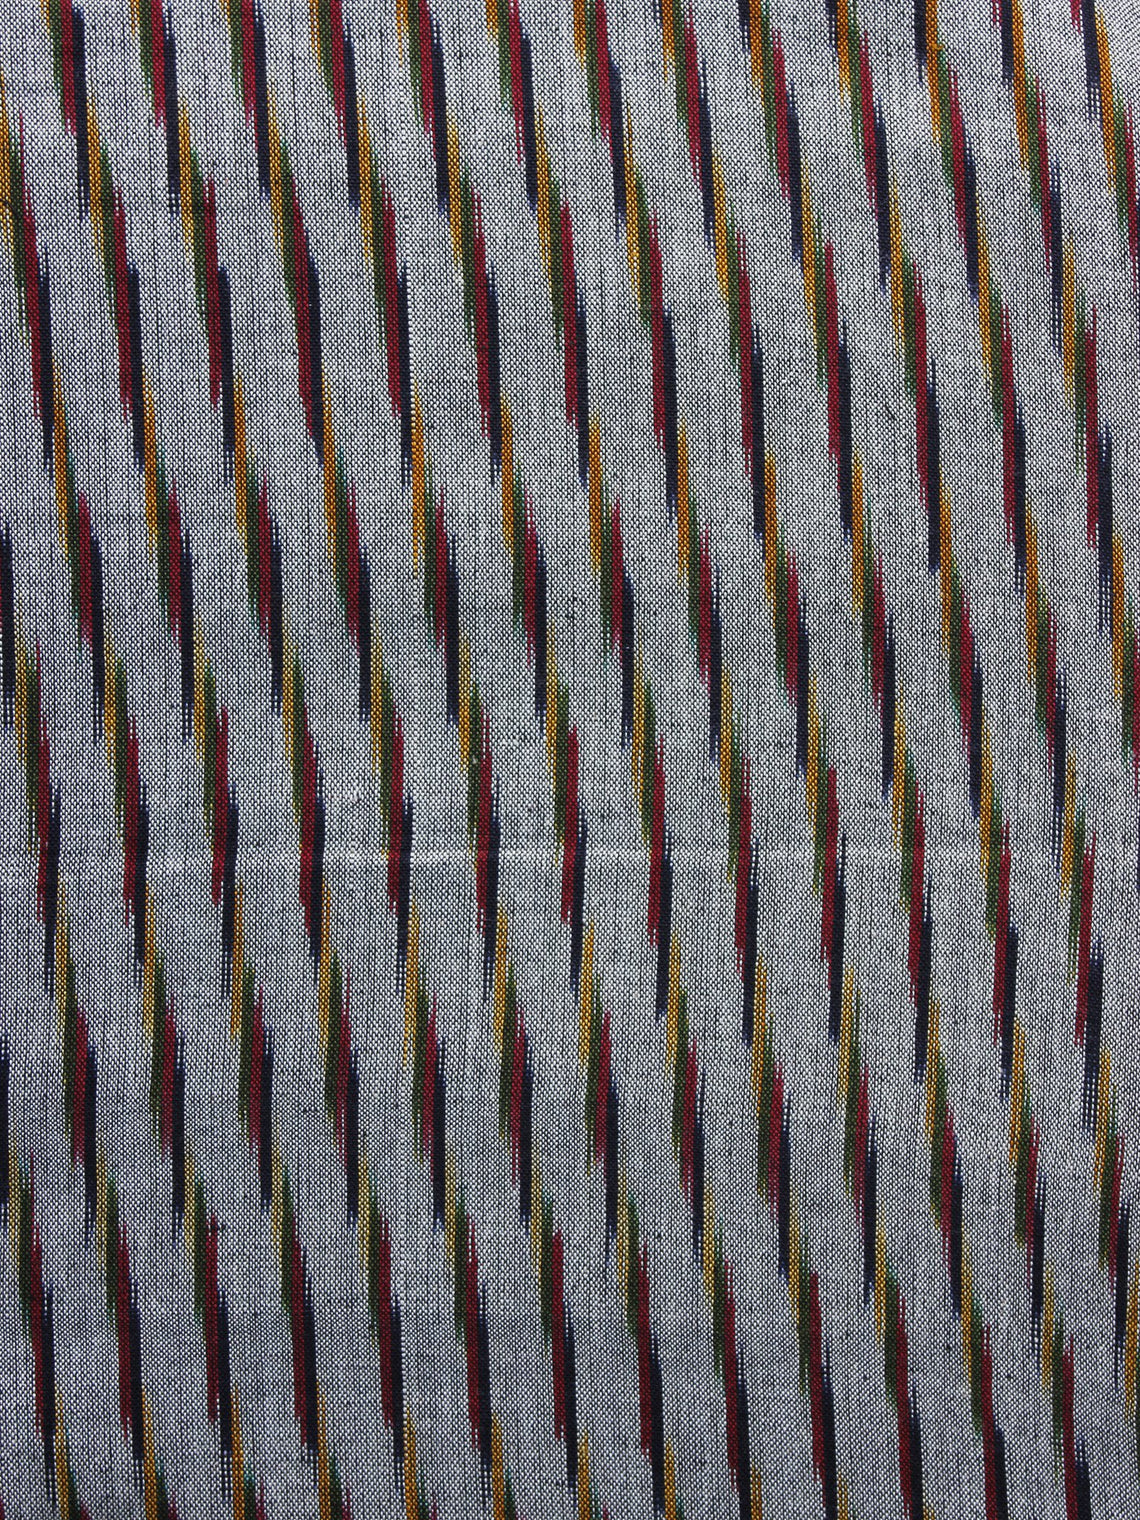 Grey Red Black  Pochampally Hand Weaved Ikat Fabric Per Meter - F003F1250